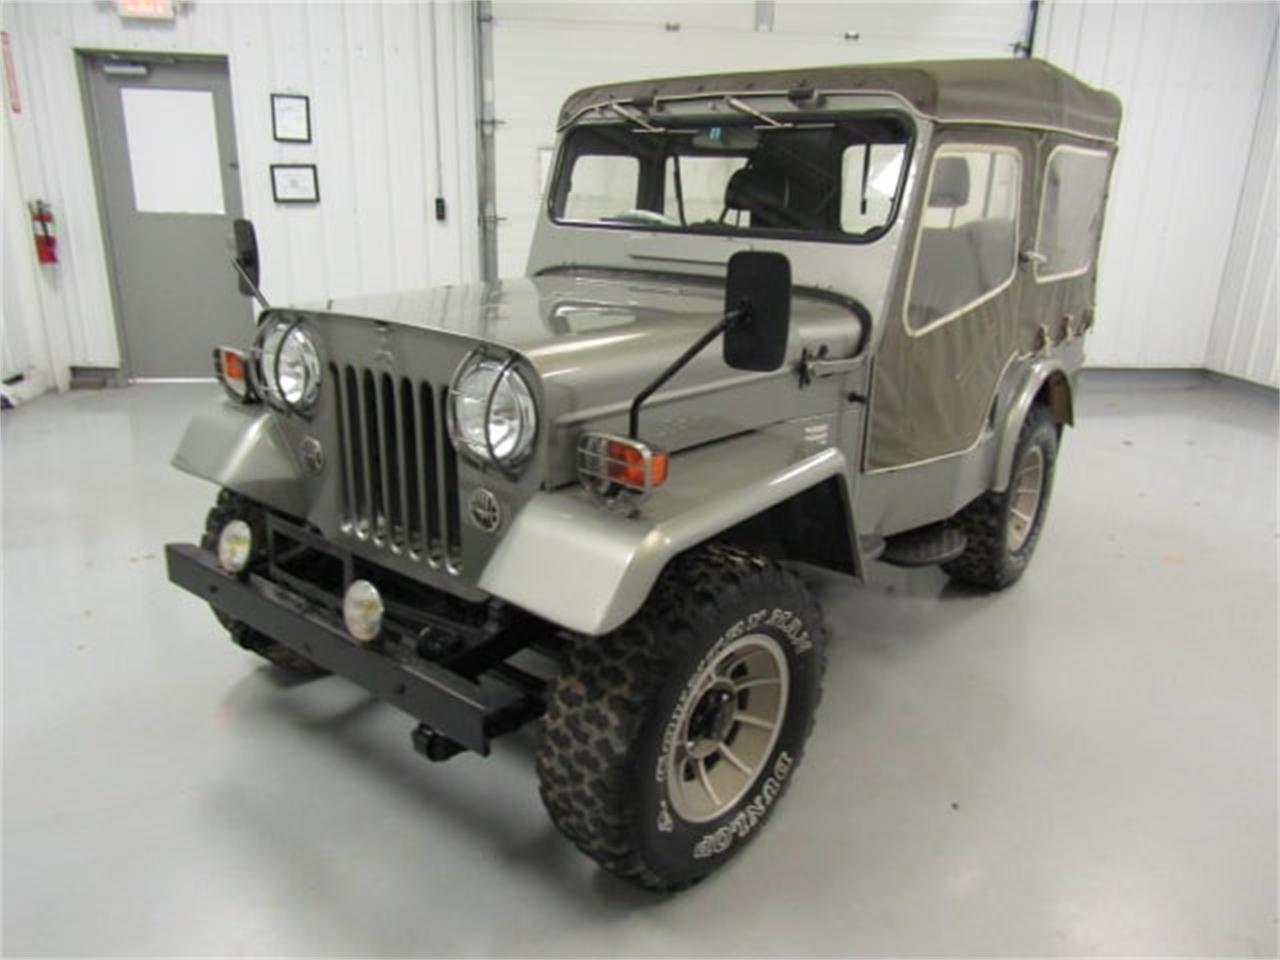 Large Picture of '79 Jeep located in Virginia - $10,999.00 - JM3M